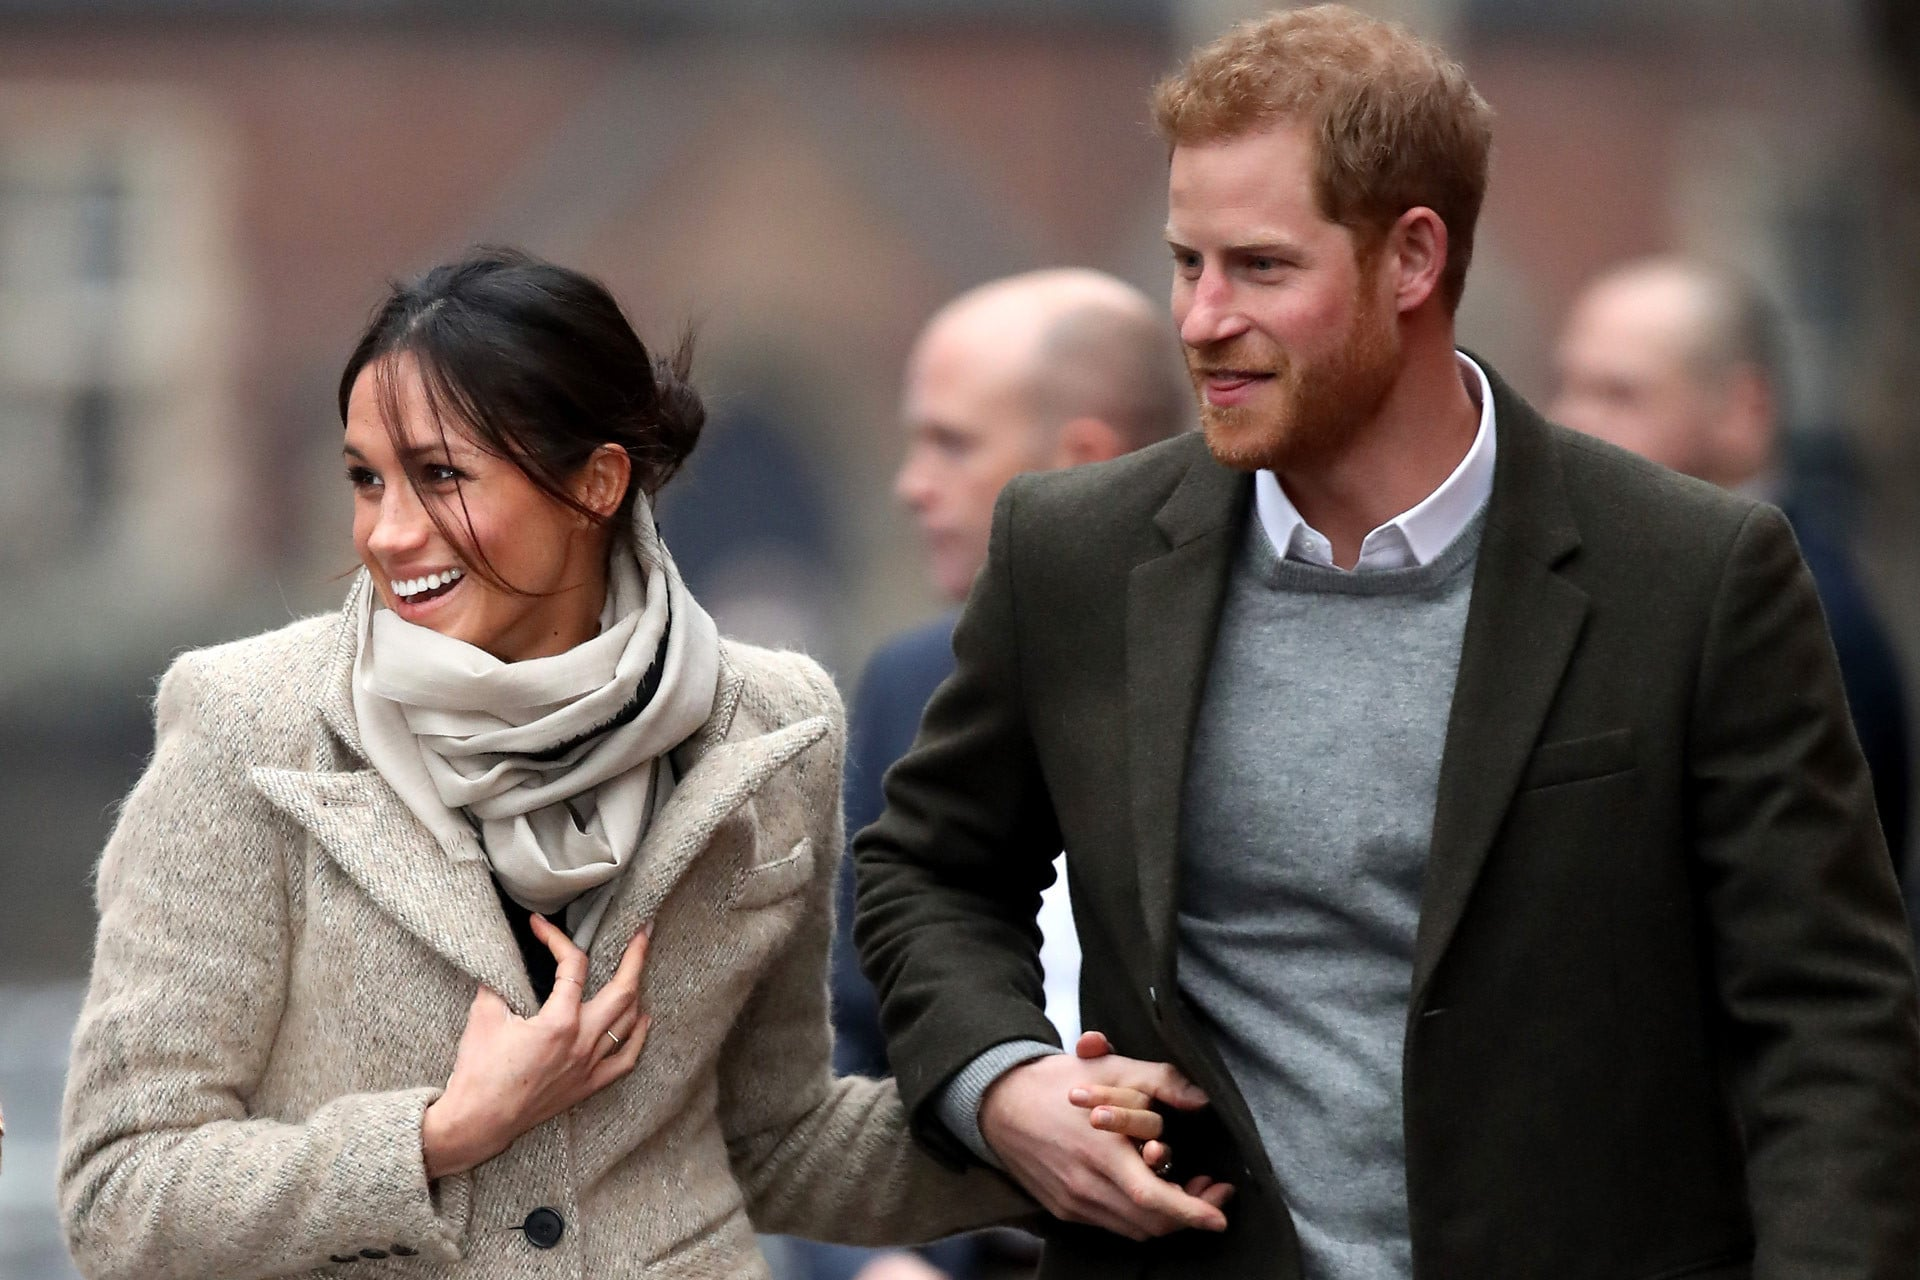 Meghan Markle showing off her favourite hairstyle with fiancé Prince Harry. Image credit: Getty Images